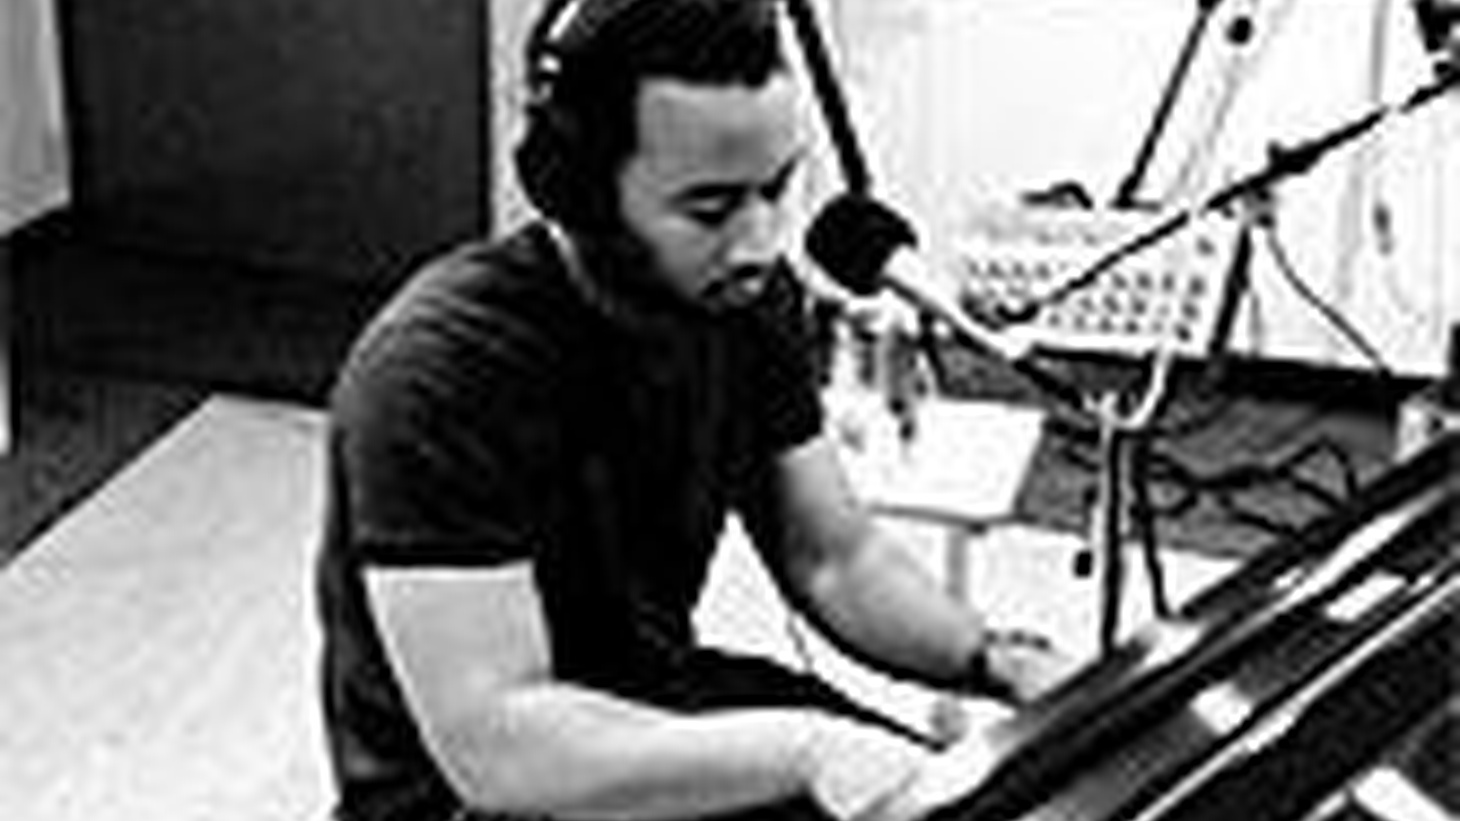 "This week on New Ground, a special visit with Grammy Award-winning superstar John Legend.  John talks with host Chris Douridas about the strong ambition he showed at an early age (he was salutatorian, student council president, and prom king in high school), meeting Kanye West in college, finding his voice on the new album ""Once Again"", and his love for the great Nina Simone.  He also gives us stunning performances of several tracks from the new collection - as well as a cover of Simone's classic take on ""Don't Let Me Be Misunderstood"". Get lifted with John Legend - on New Ground."